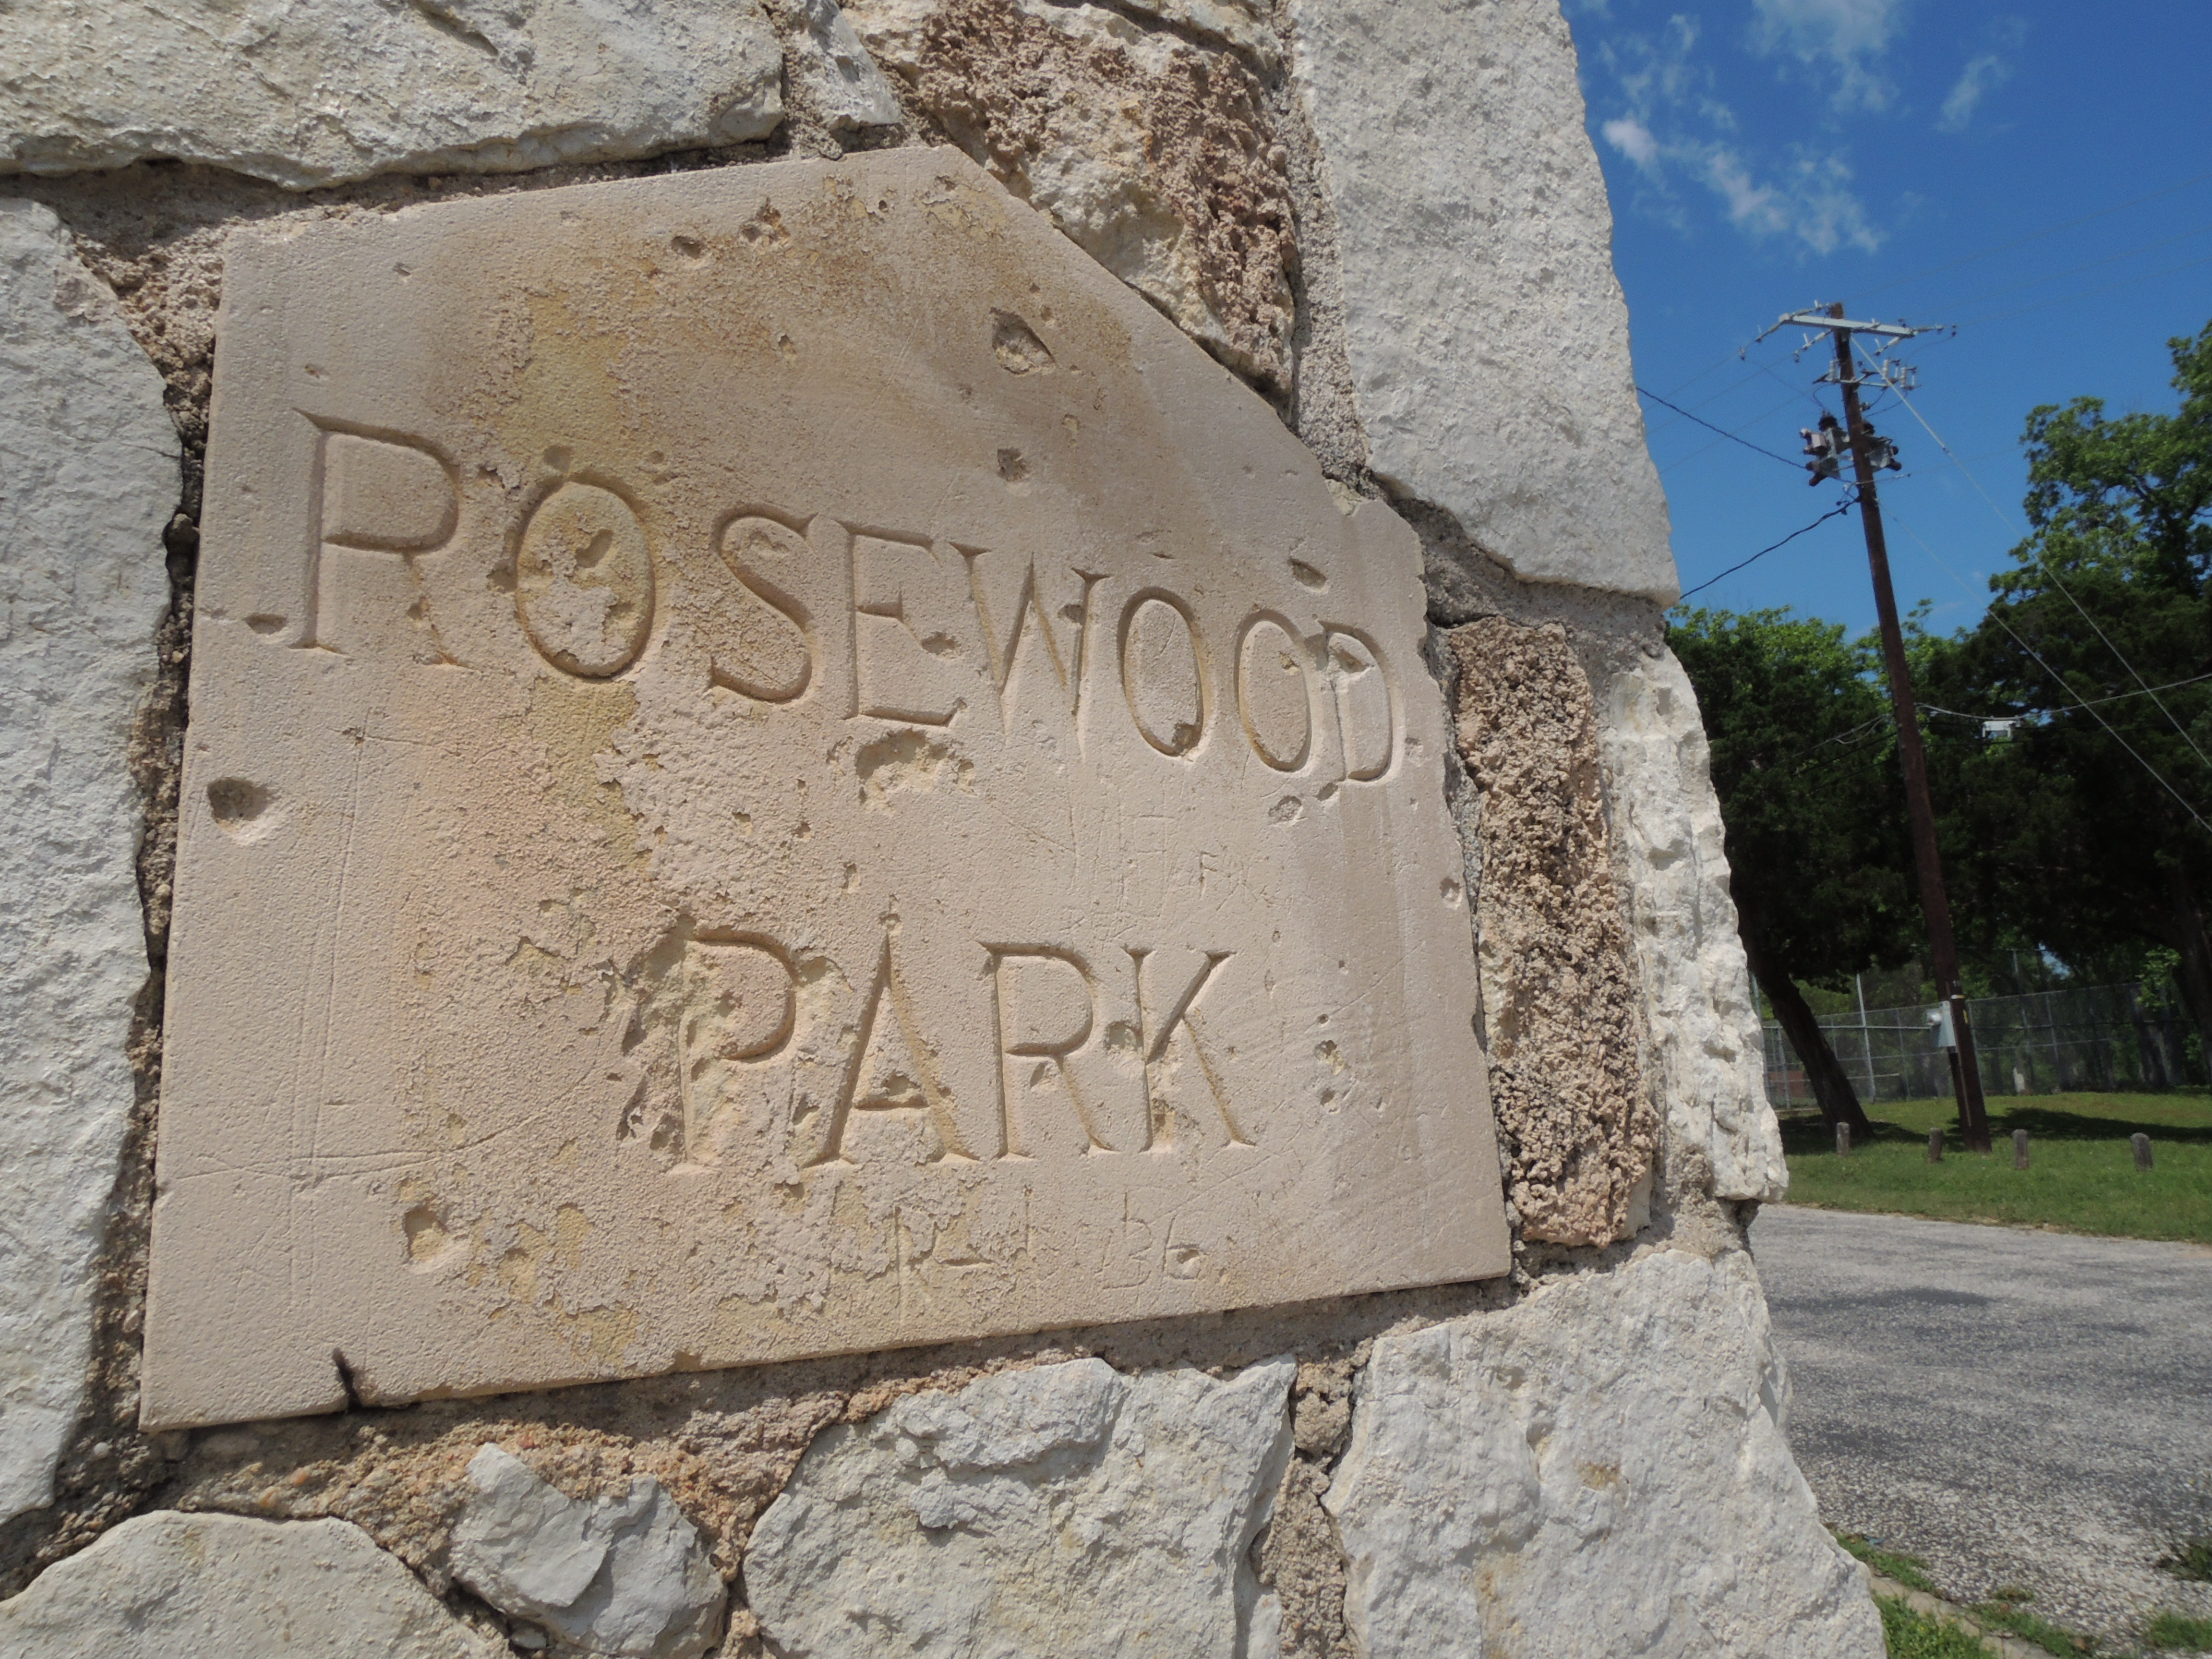 Rosewood Park